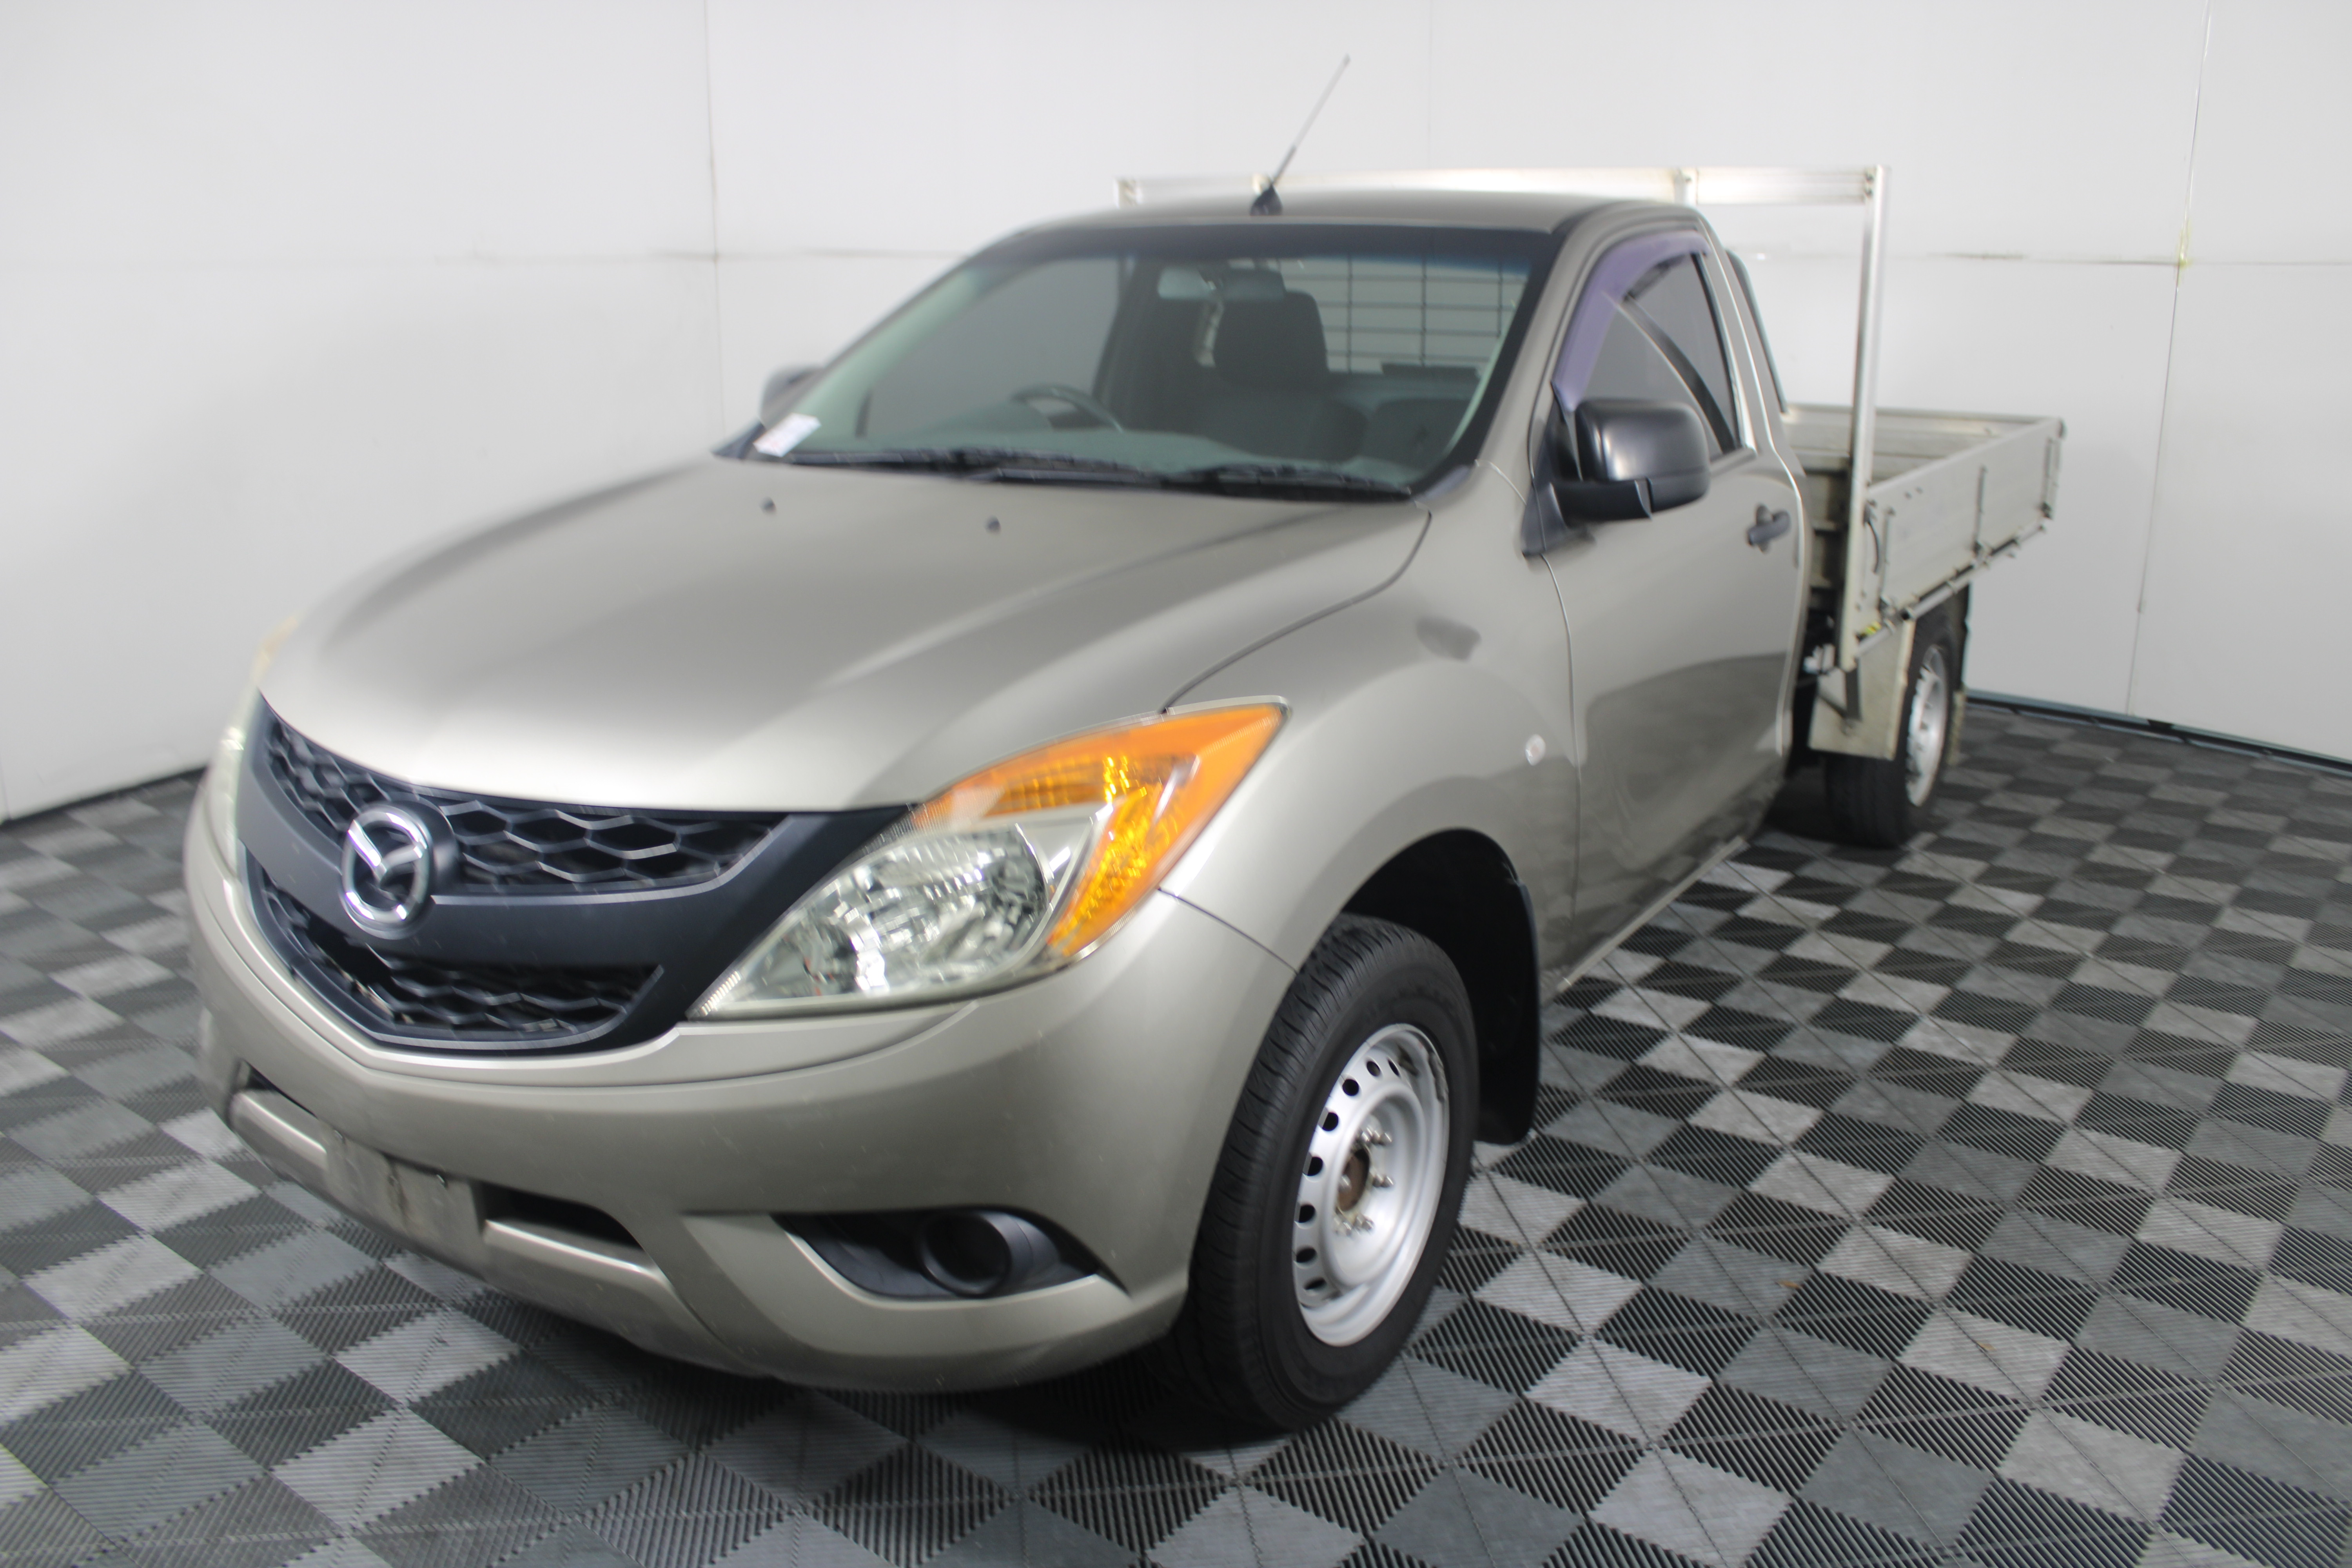 2012 Mazda BT-50 4X2 XT Turbo Diesel Manual Cab Chassis